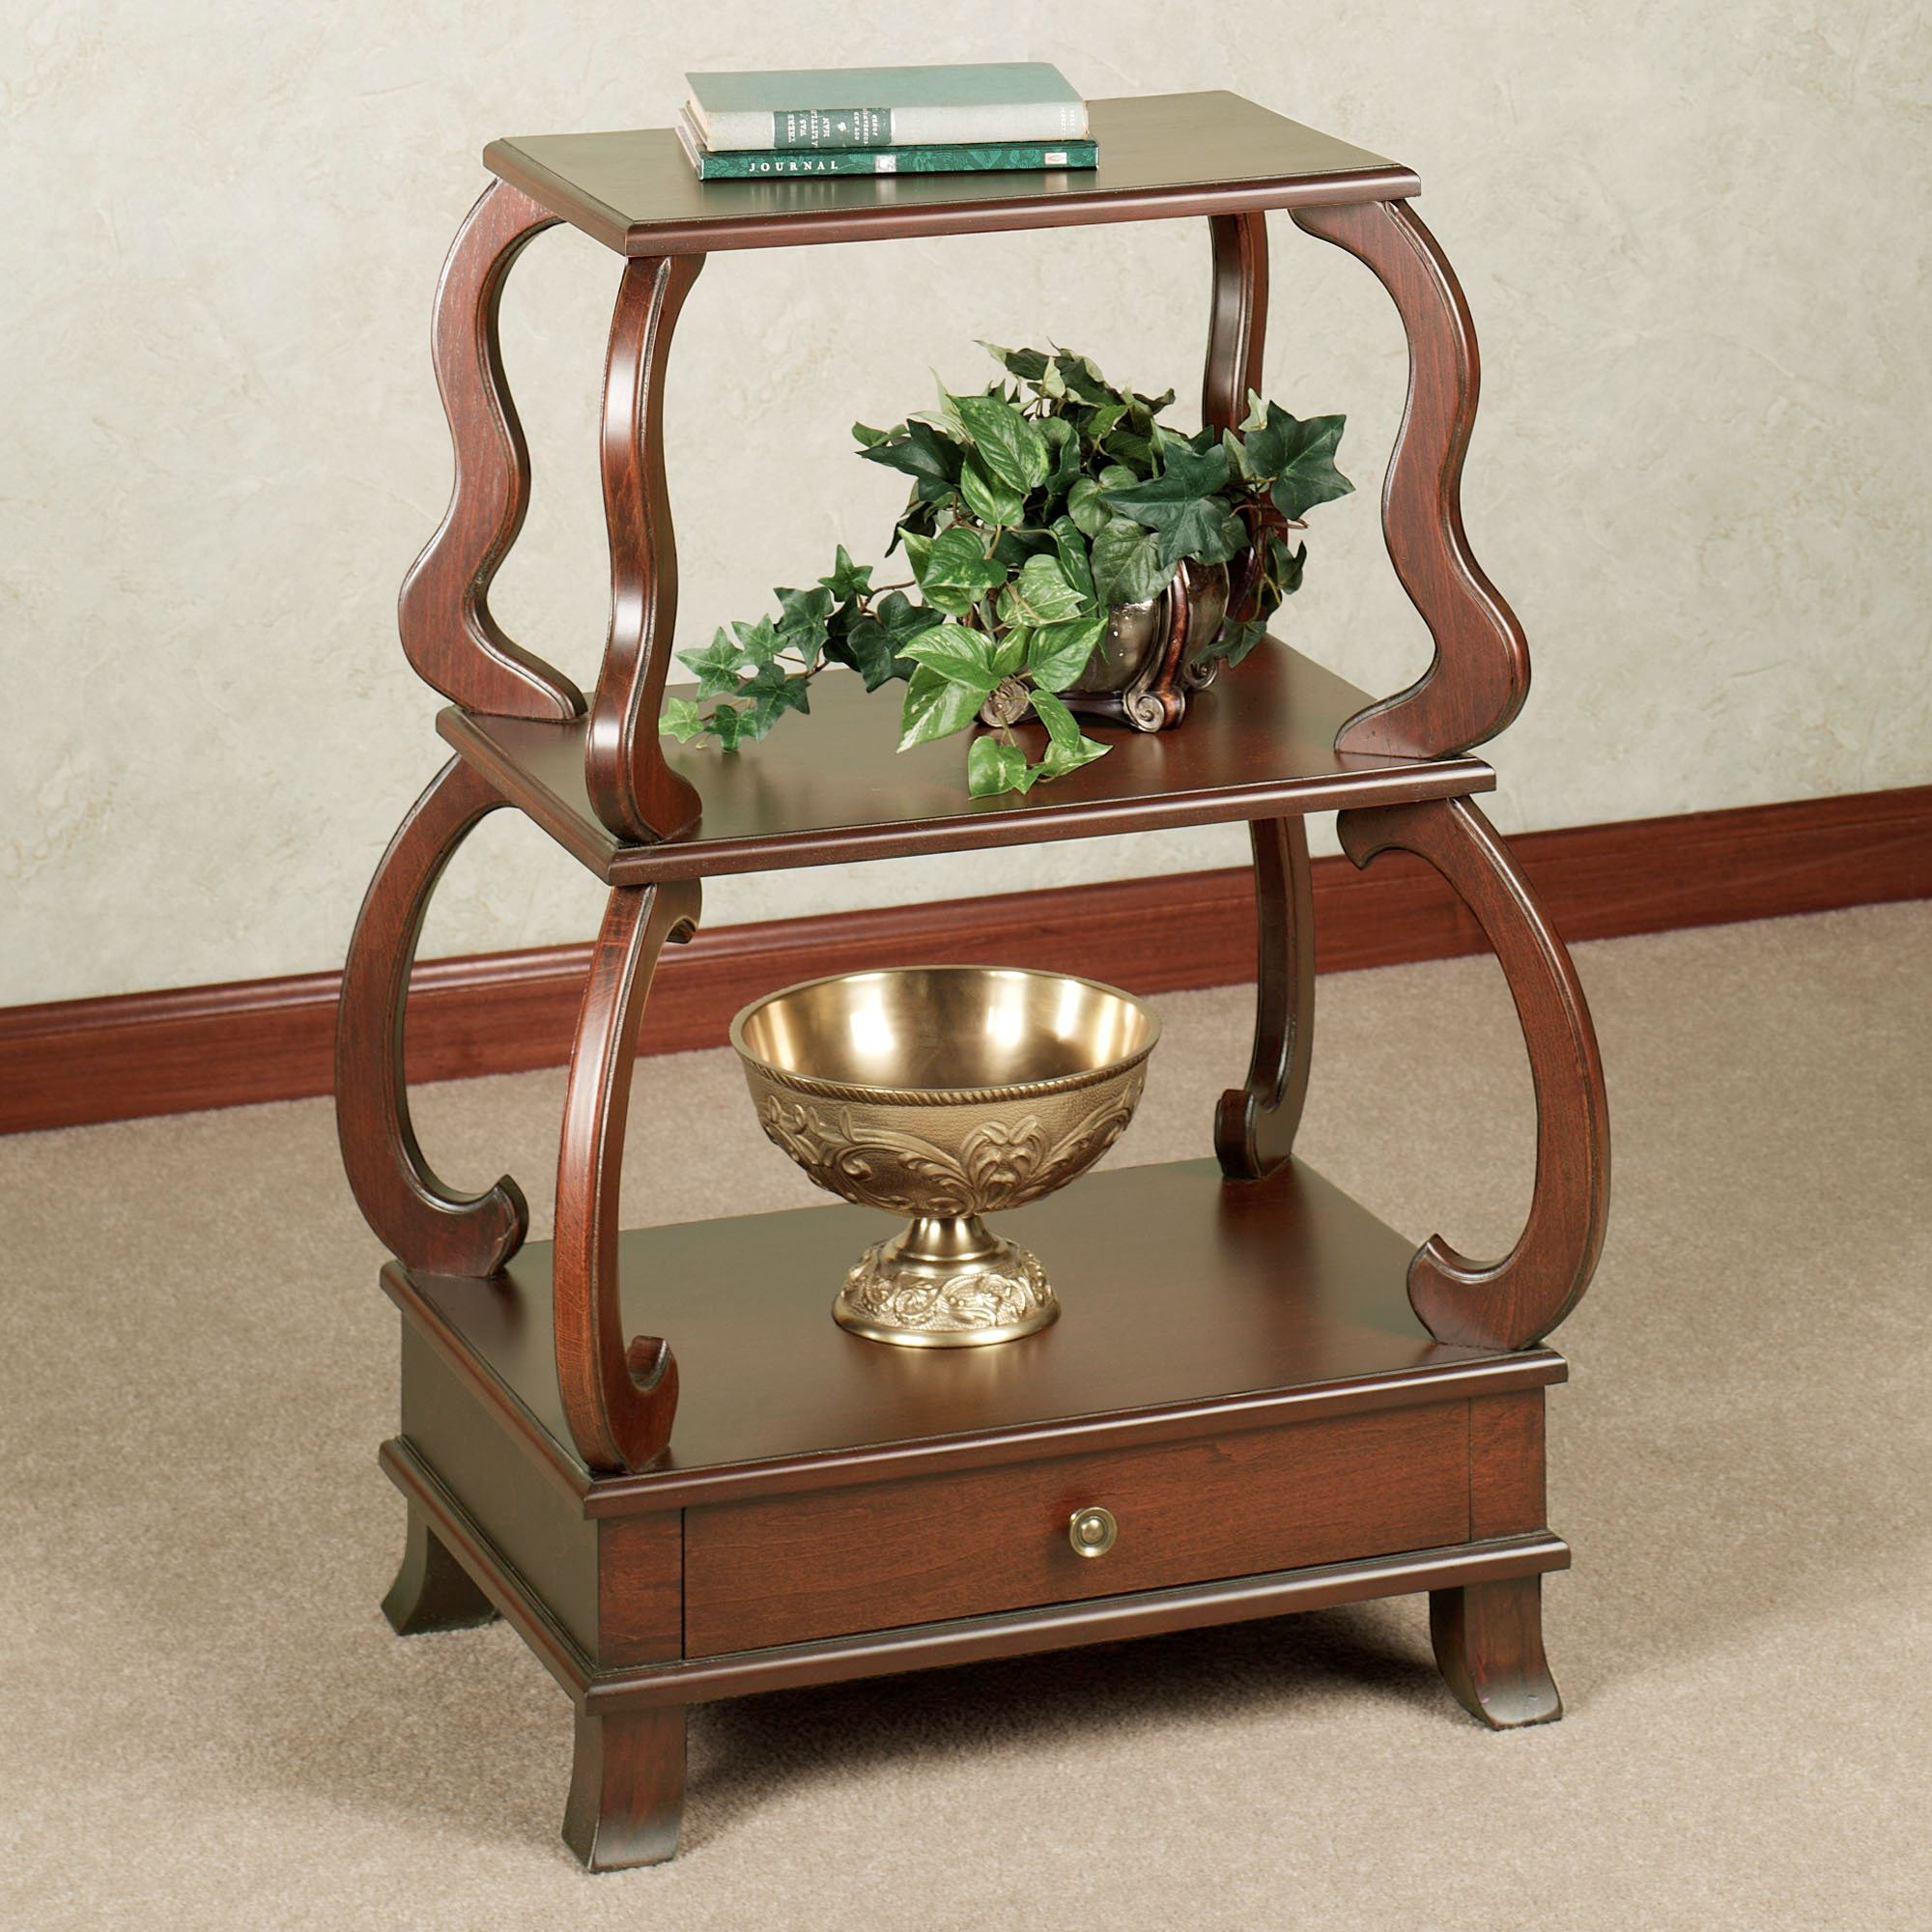 abbott wooden accent table wood corner canadian tire outdoor safavieh lighting cast aluminum coffee target storage light furniture blue bedroom lamps tiffany style and lamp chrome